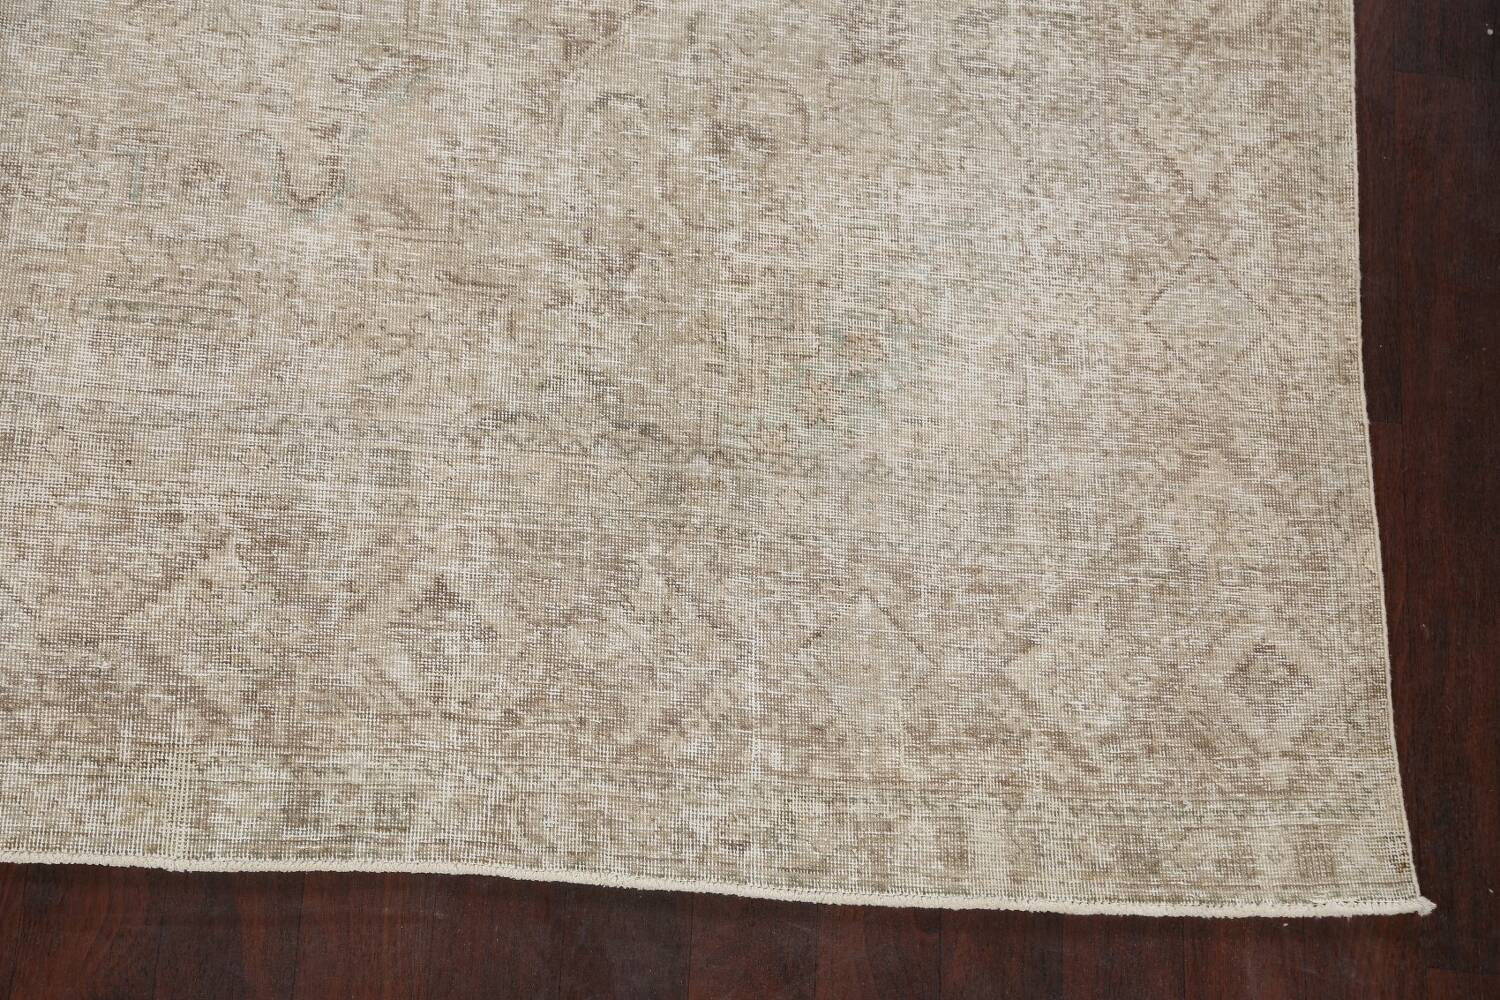 Muted Distressed Tabriz Persian Area Rug 10x13 image 5